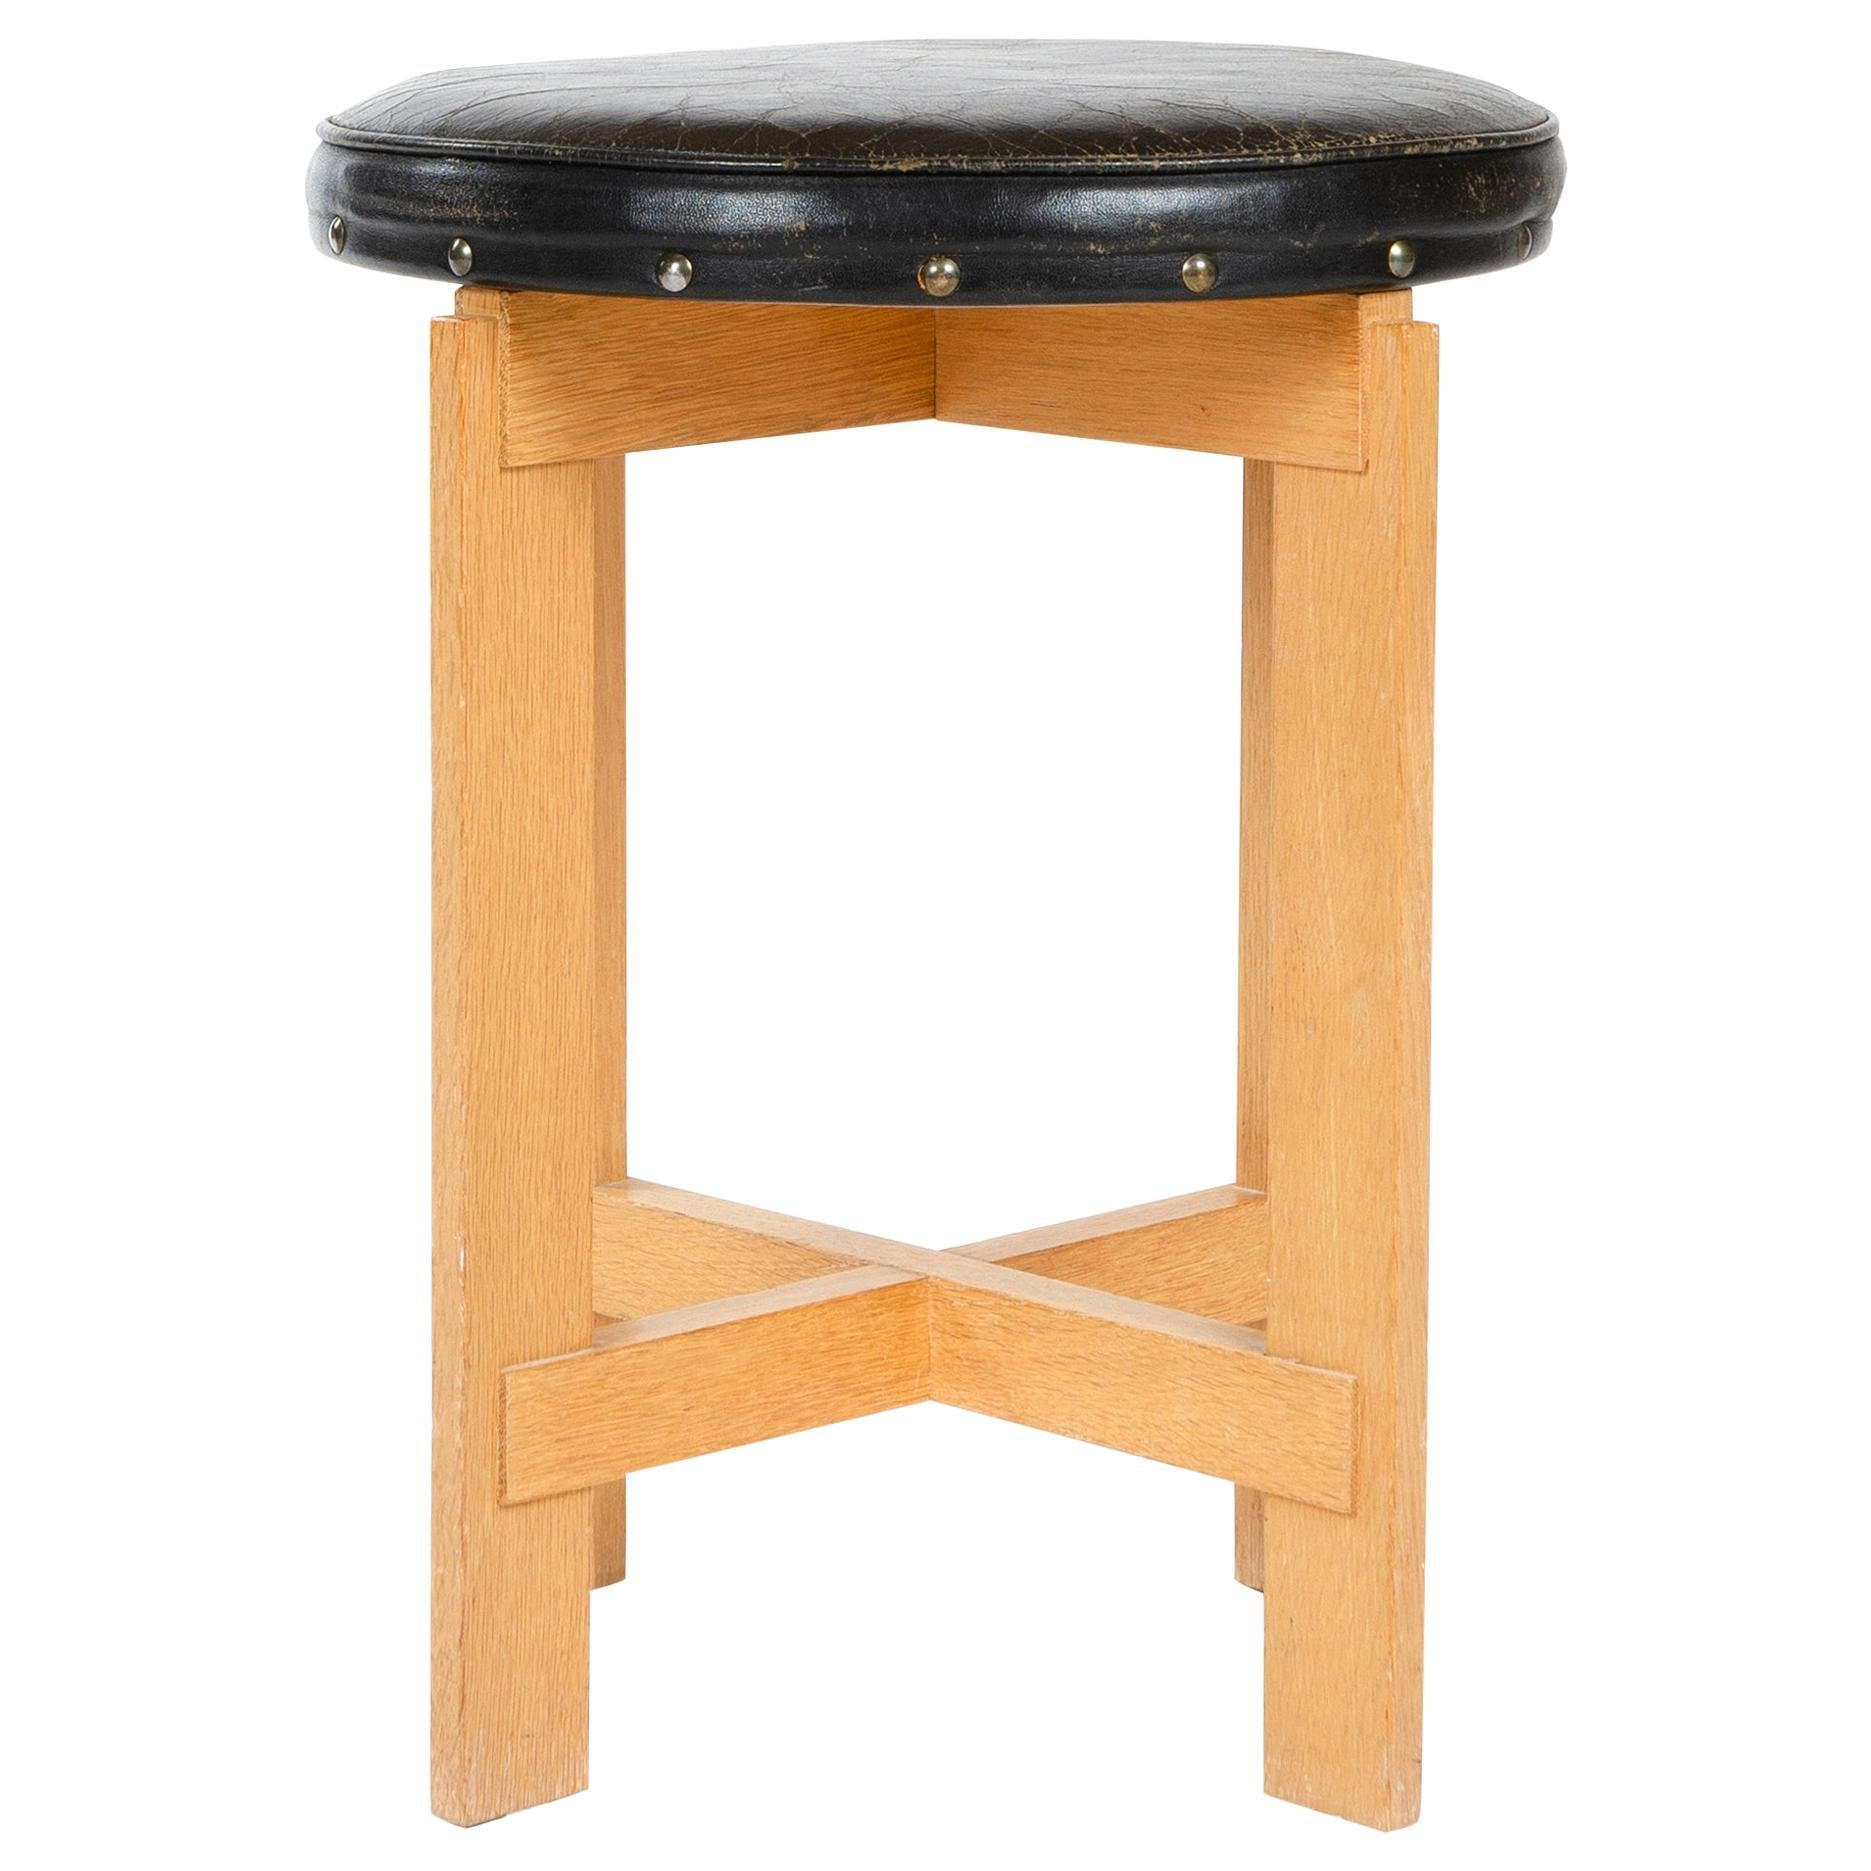 1960s Swedish Oak and Leather Stool by Uno & Östen Kristiansson for Luxus